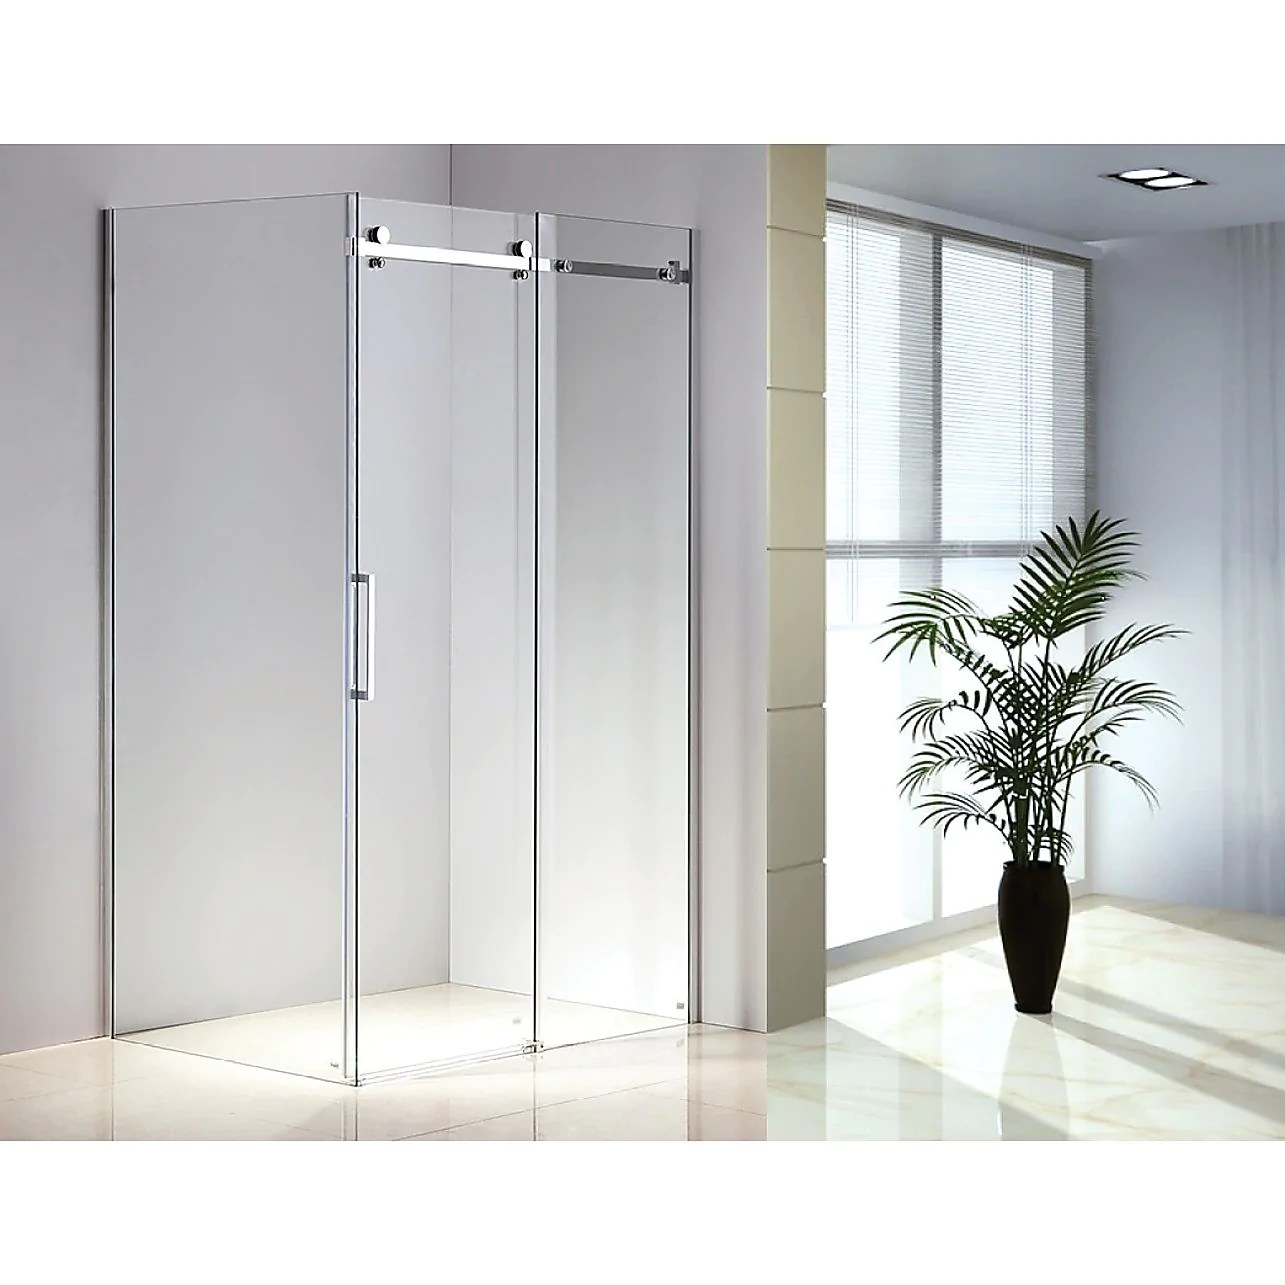 Shower Screen 1200x900x1950mm Frameless Glass Sliding Door By Della Francesca